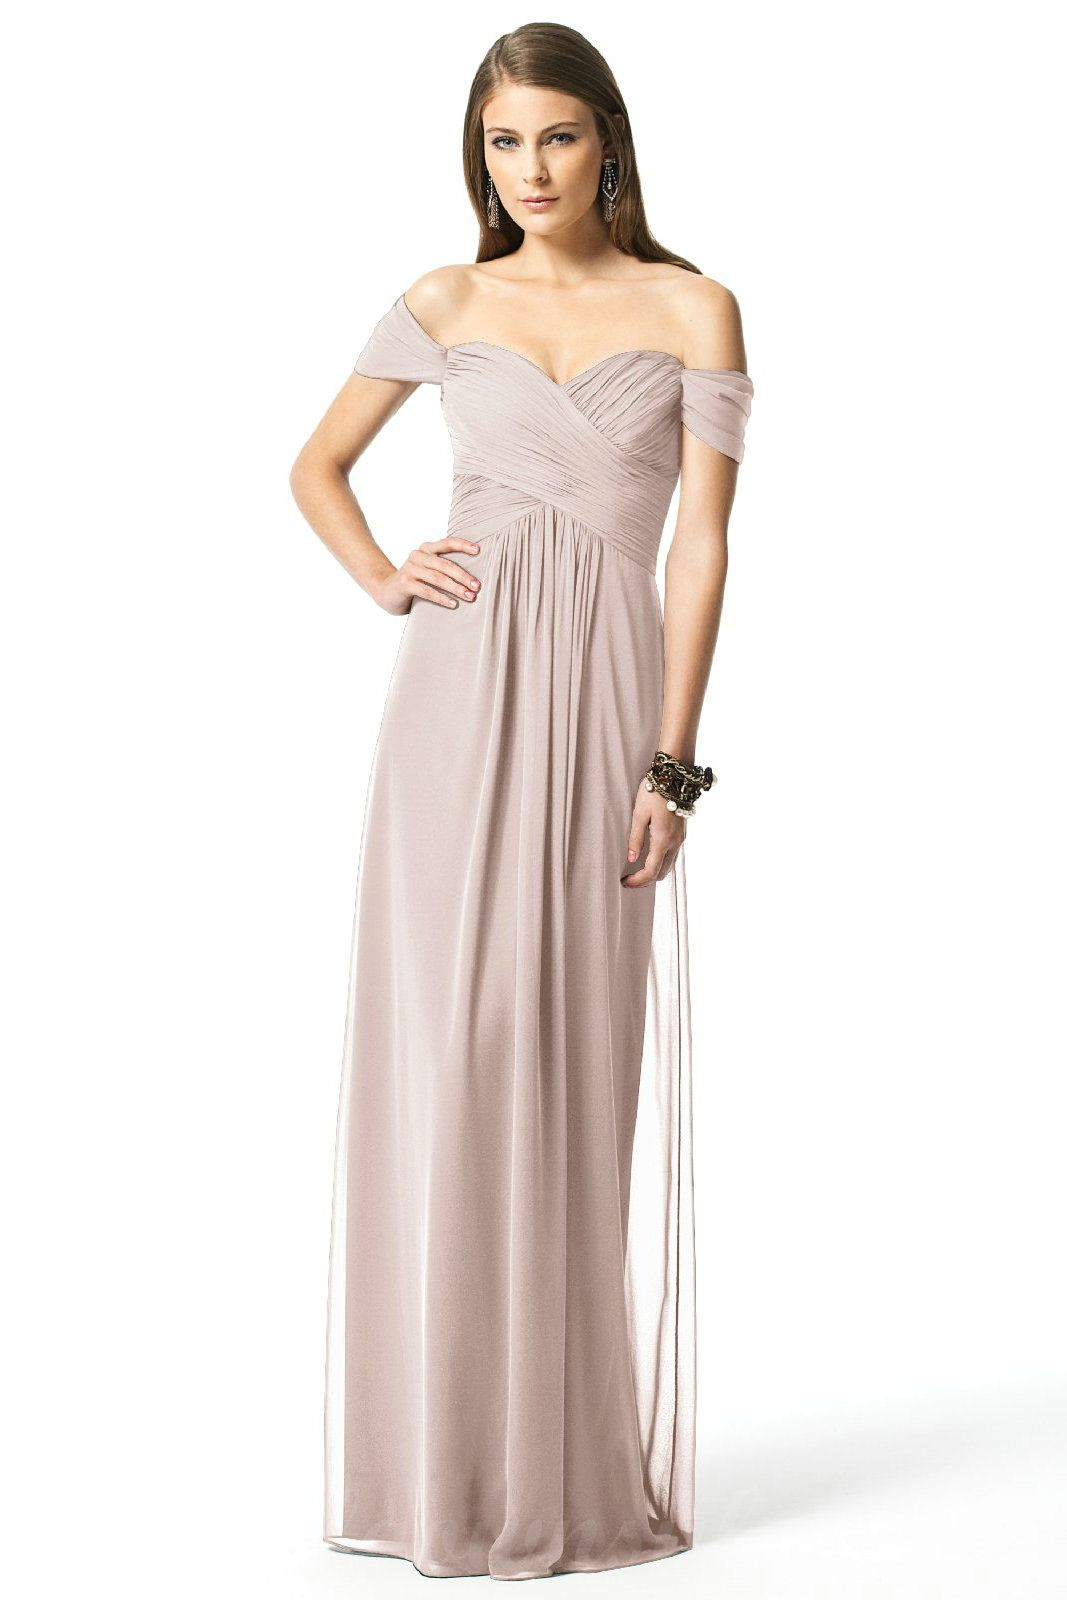 Sweetheart off the shoulder top bridesmaid google search take a look at this gorgeous dessy style 2844 bridesmaid dress in nude fabric available in sizes and tons of colors at brideside ombrellifo Gallery